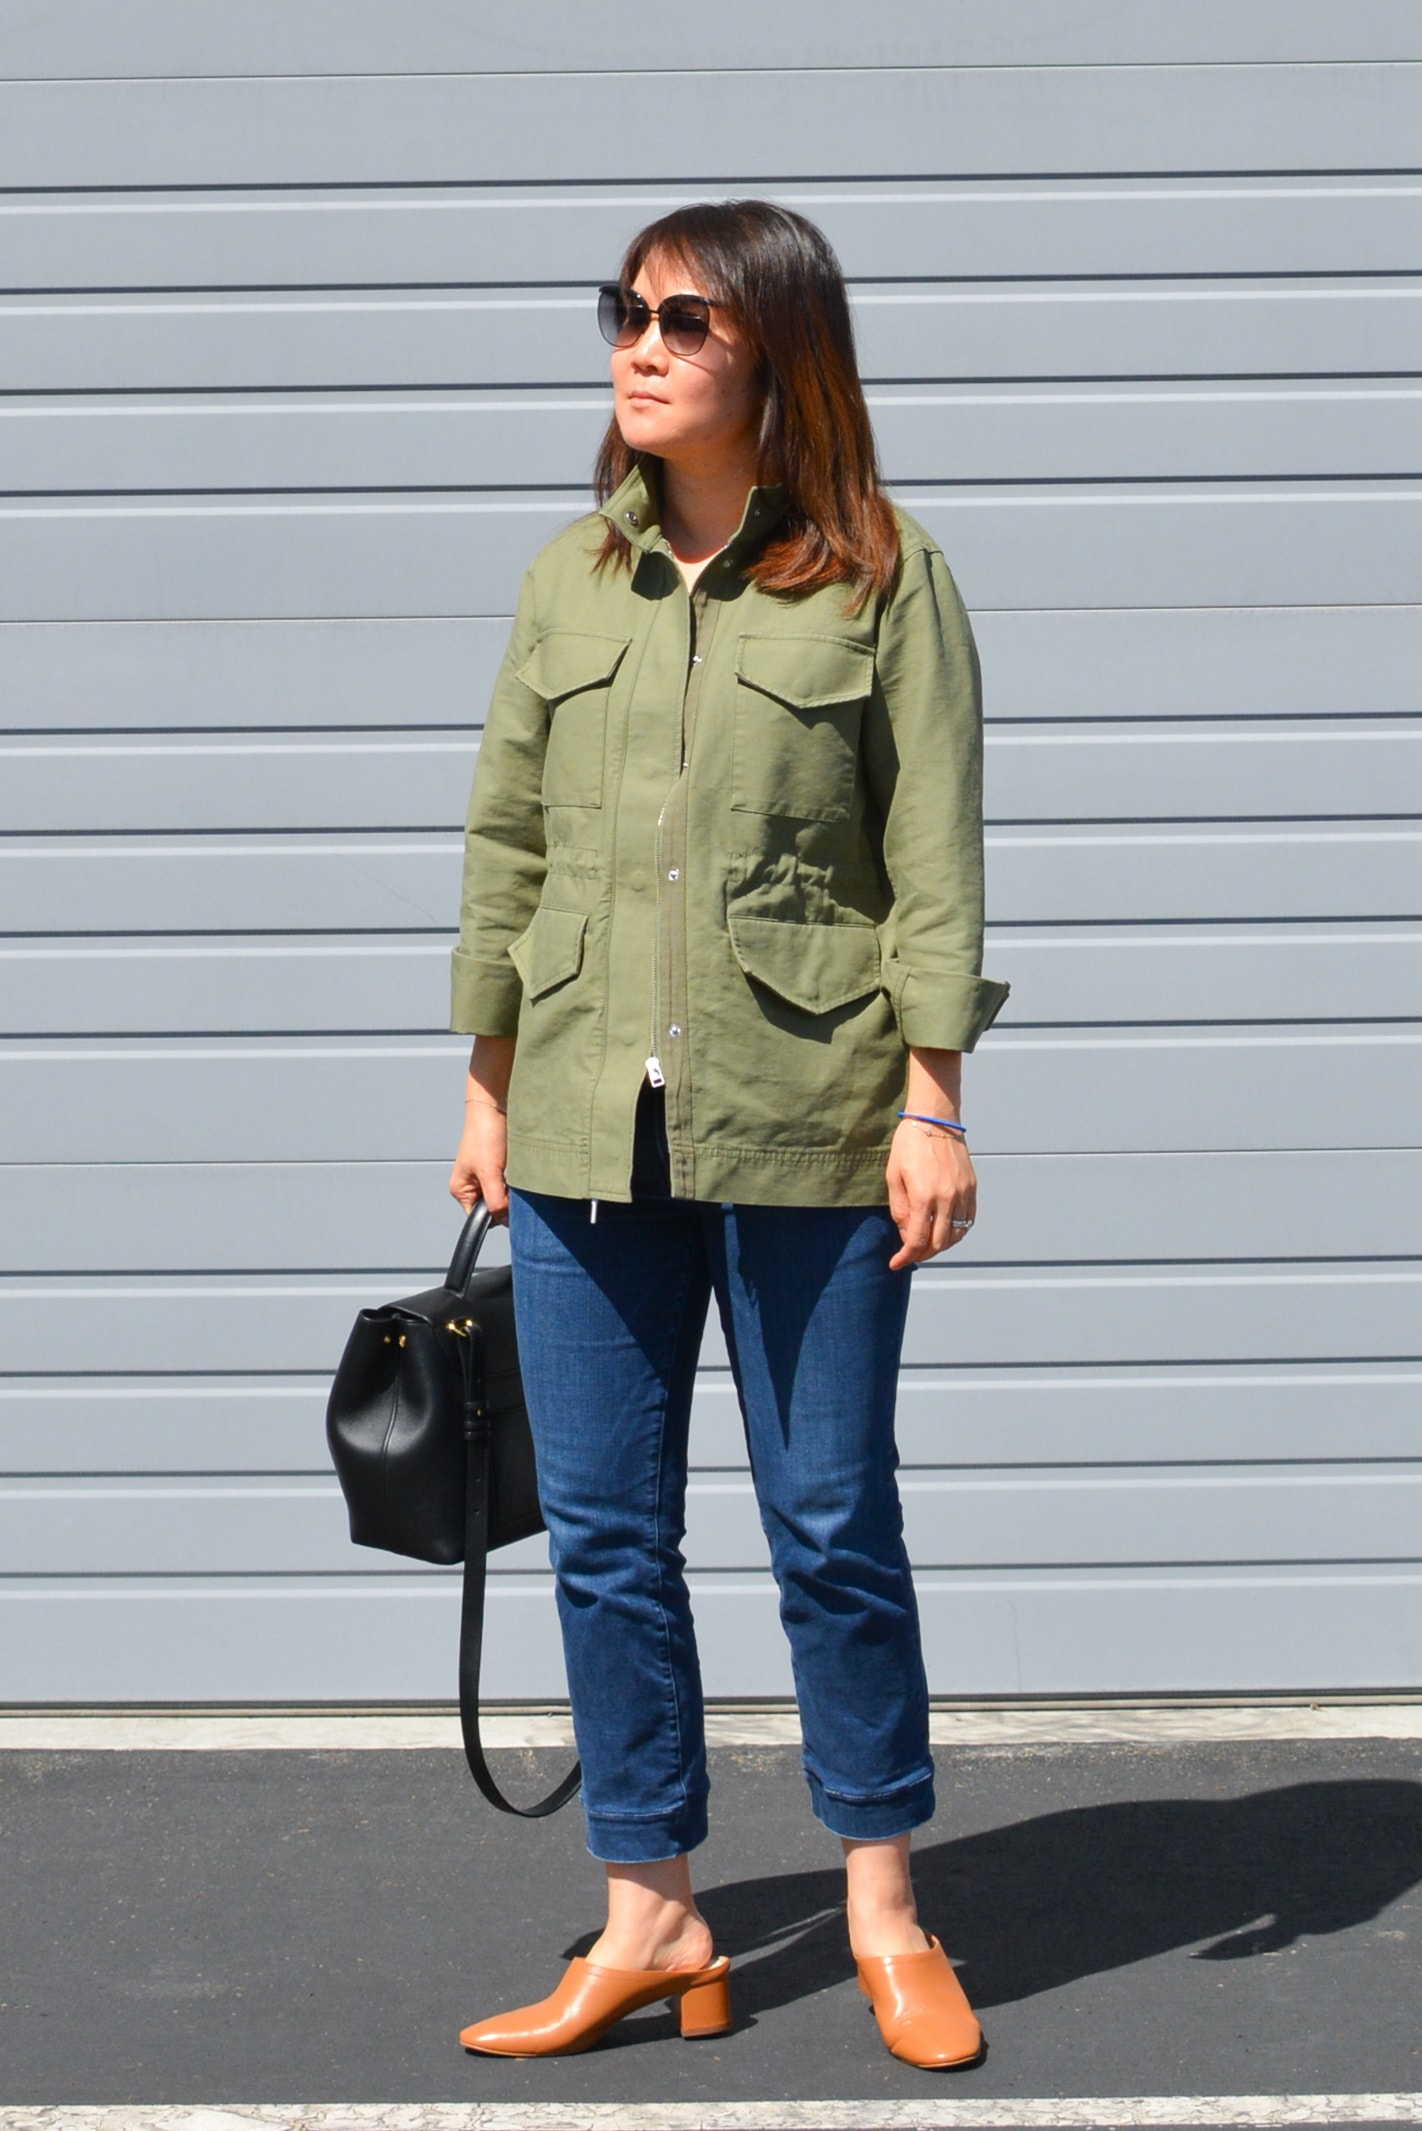 Everlane Review The Modern Utility Jacket (3 of 3)-min.jpg